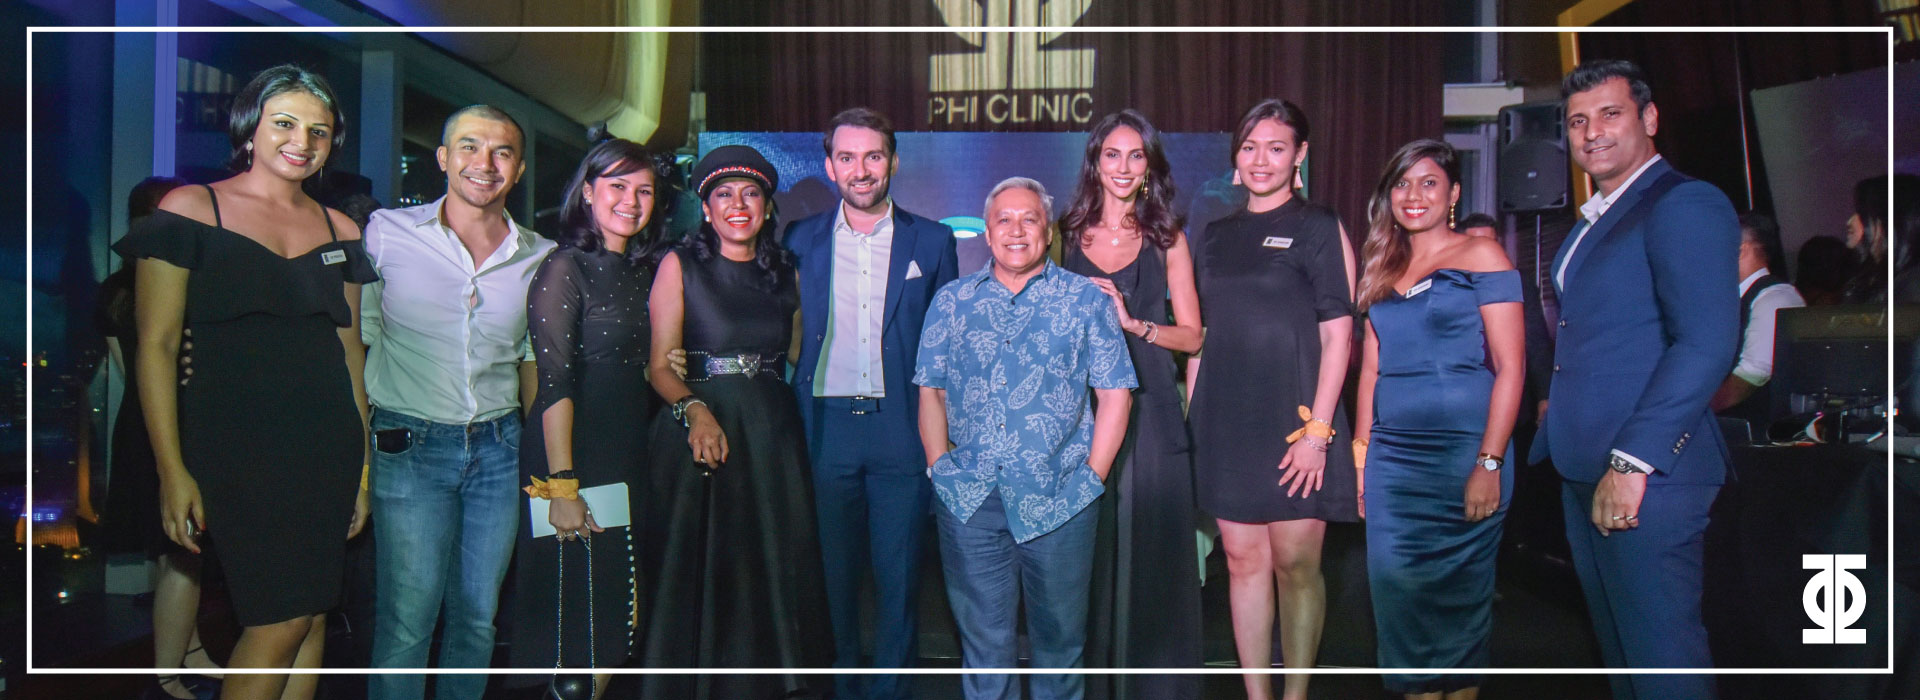 PHI Clinic Malaysia's special event 2019